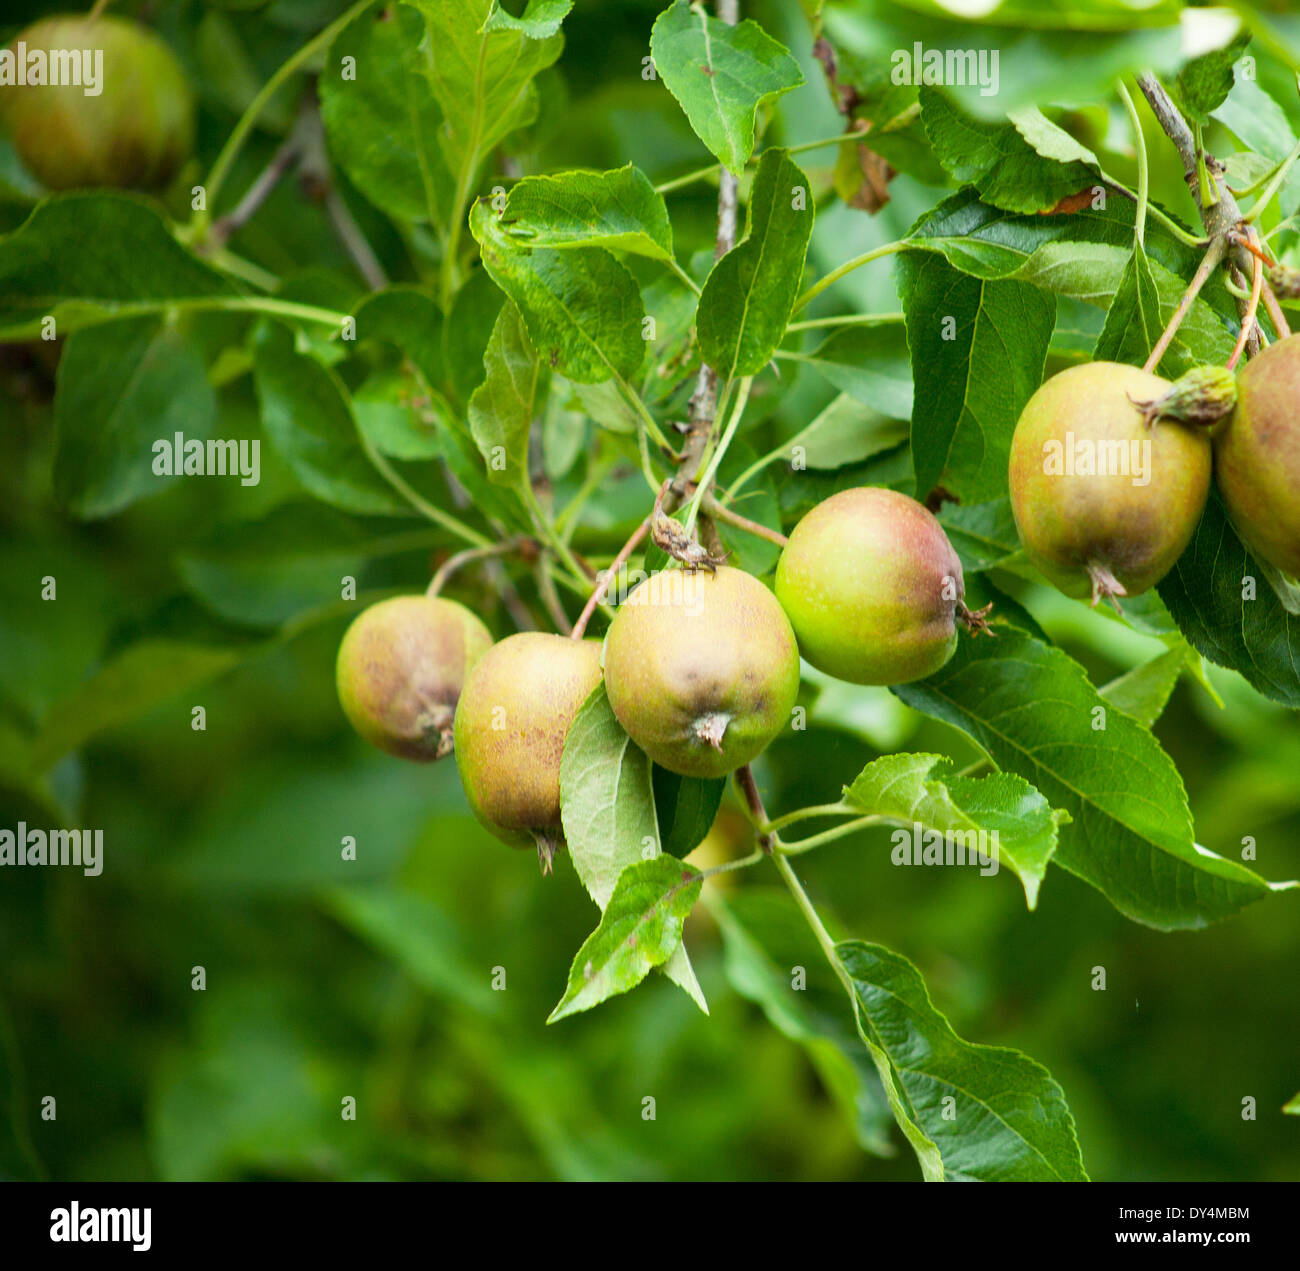 a tight shot of apples growing on a tree still gree with a little color - Stock Image